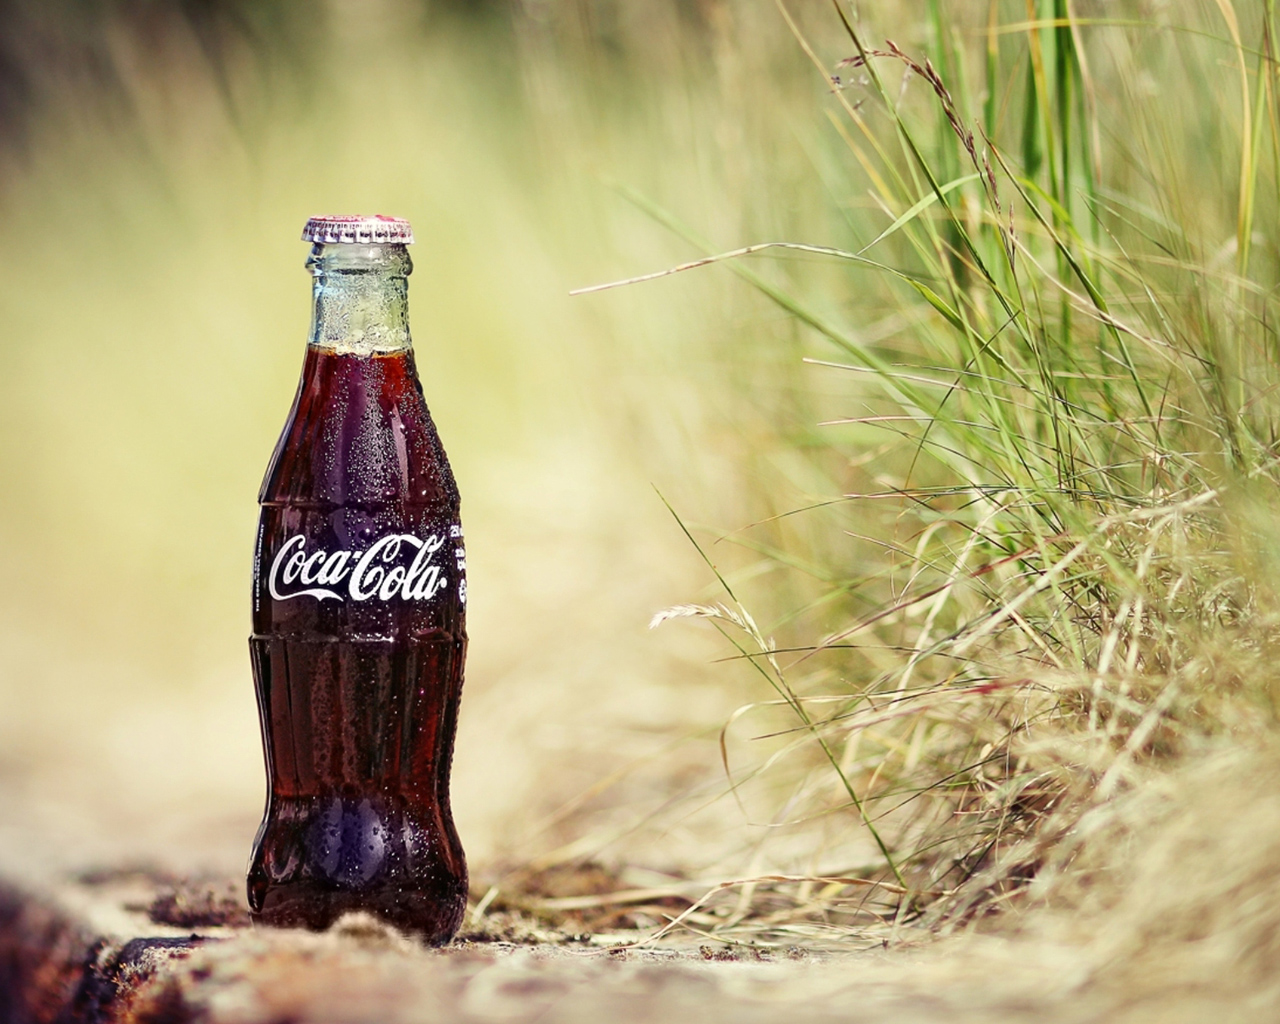 Fresh CocaCola bottle